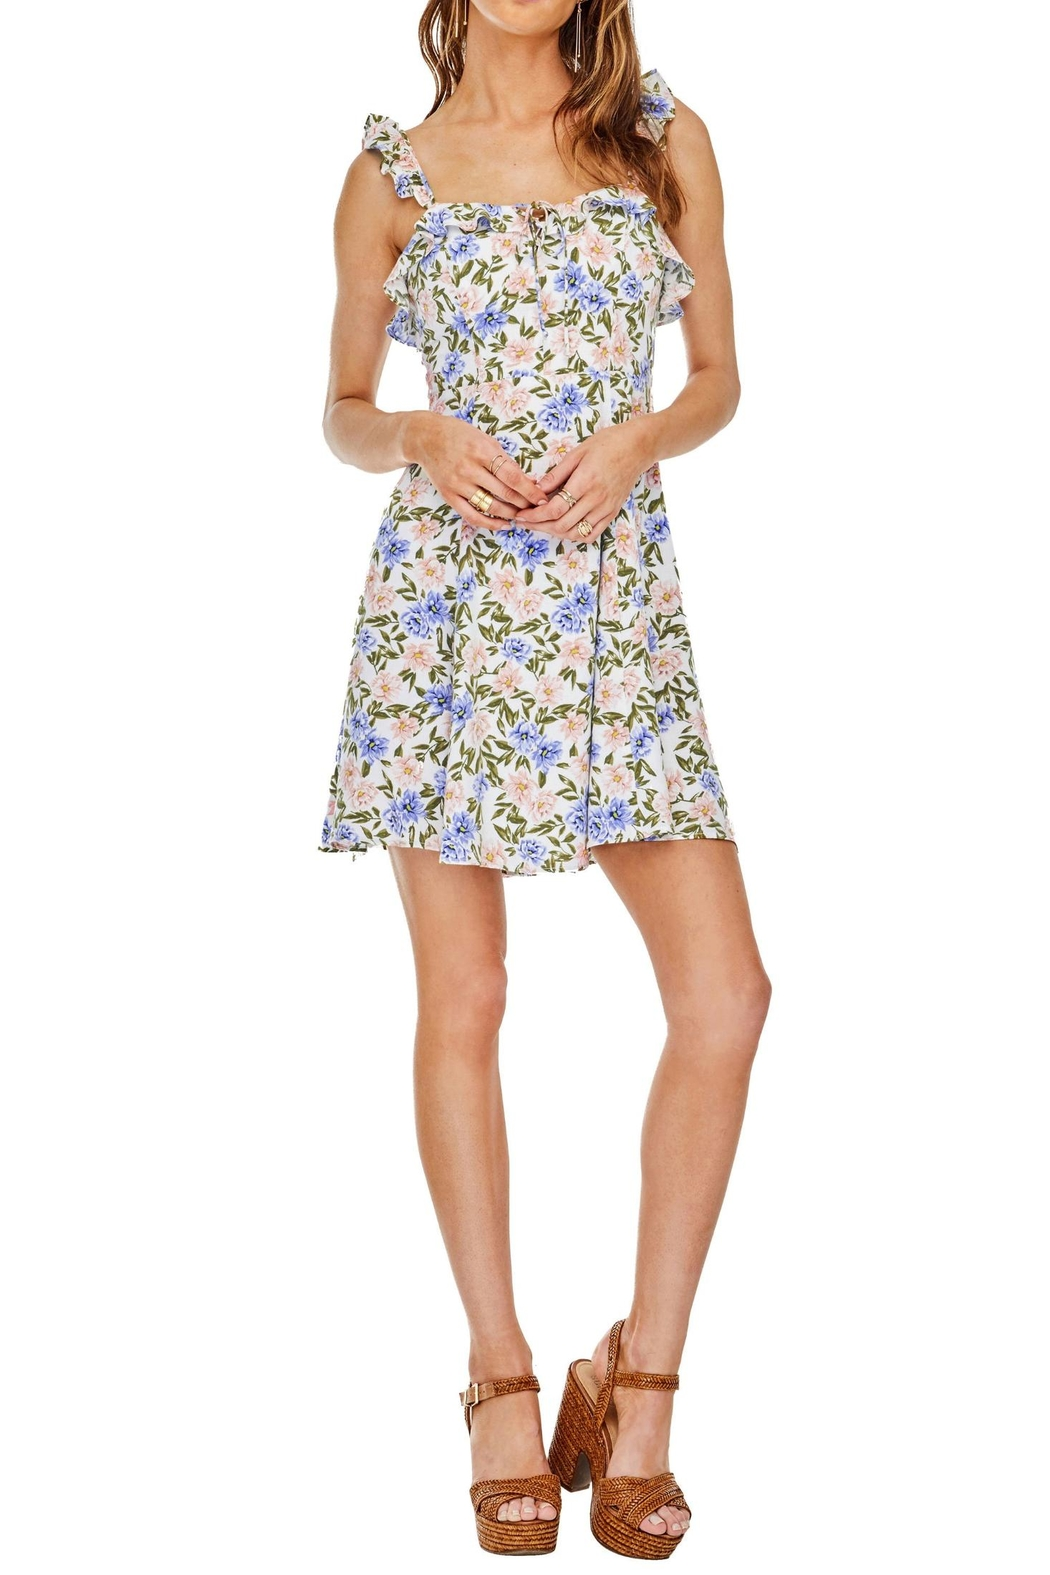 ASTR Floral Hannah Dress - Front Cropped Image